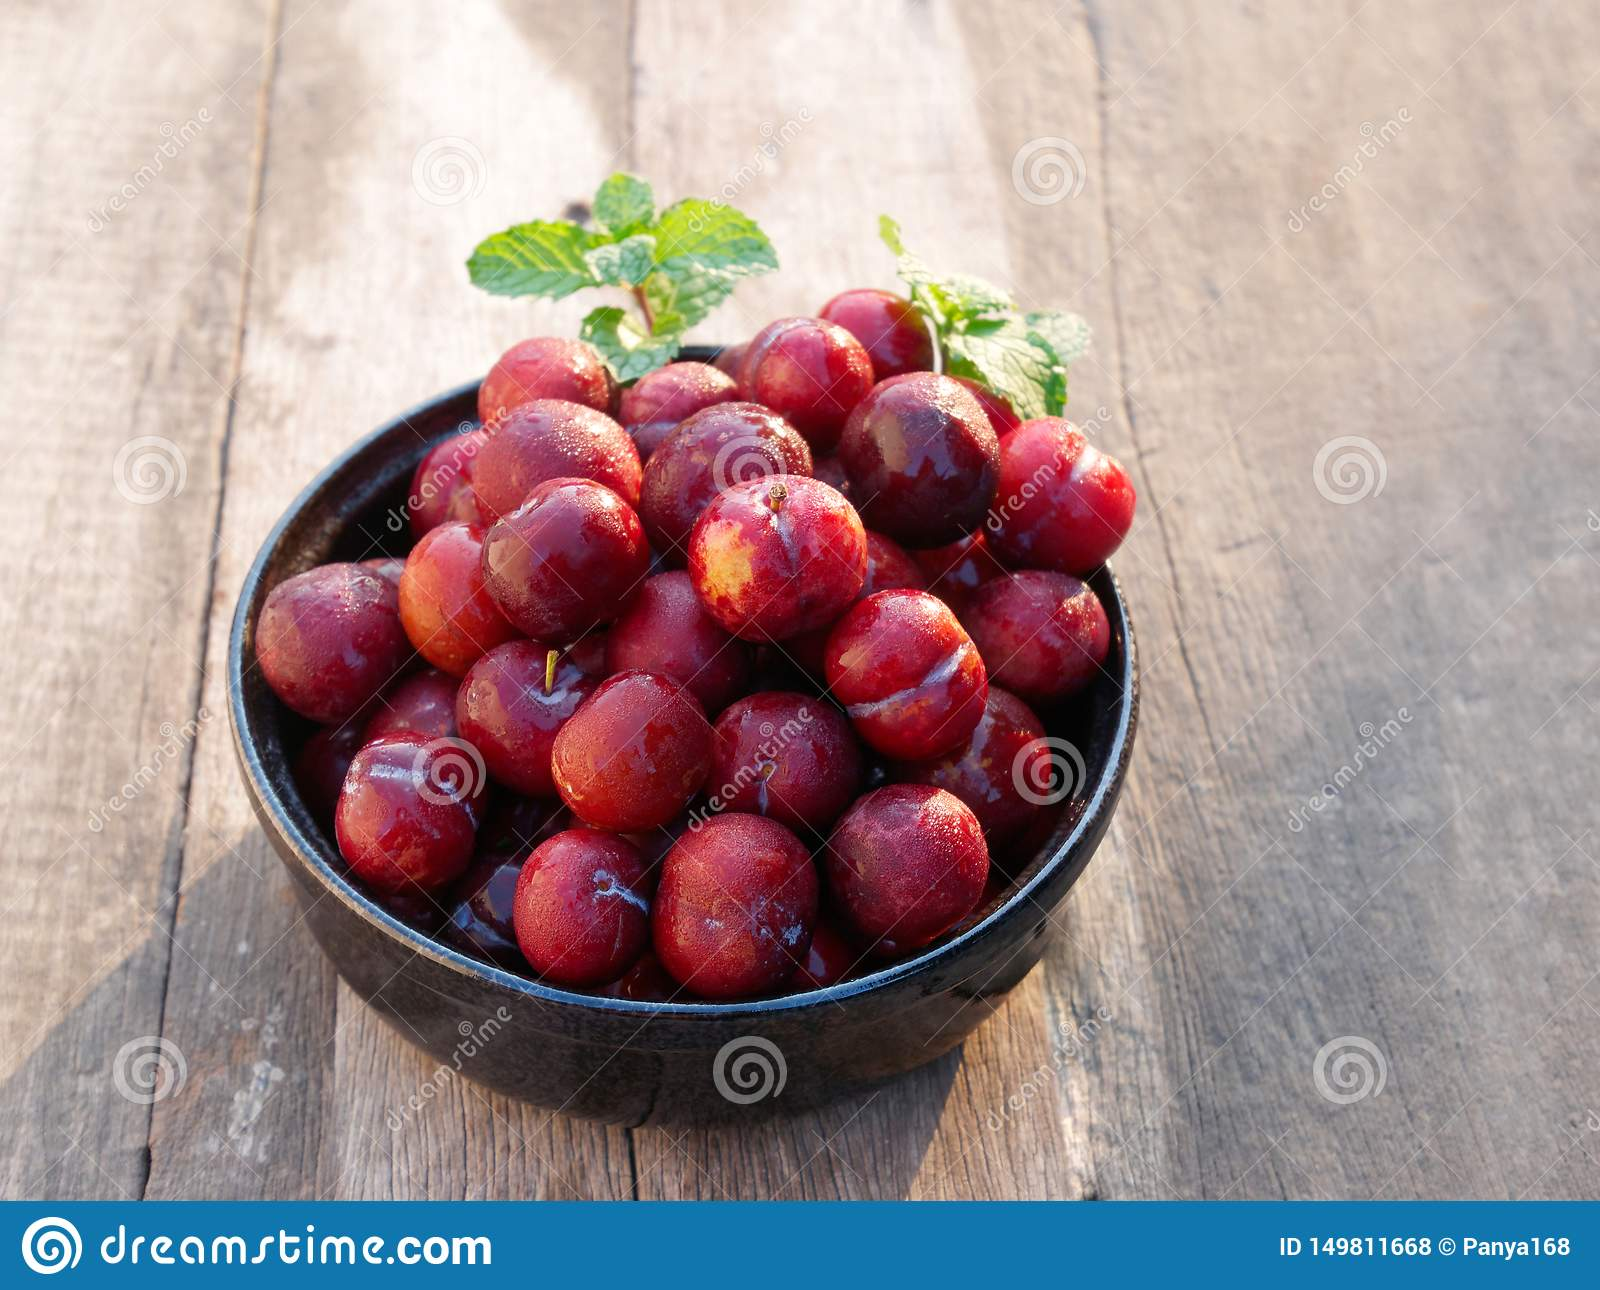 Plum Ju-li. the fruit is similar to the Red Ban Luang species. But the result will be smaller